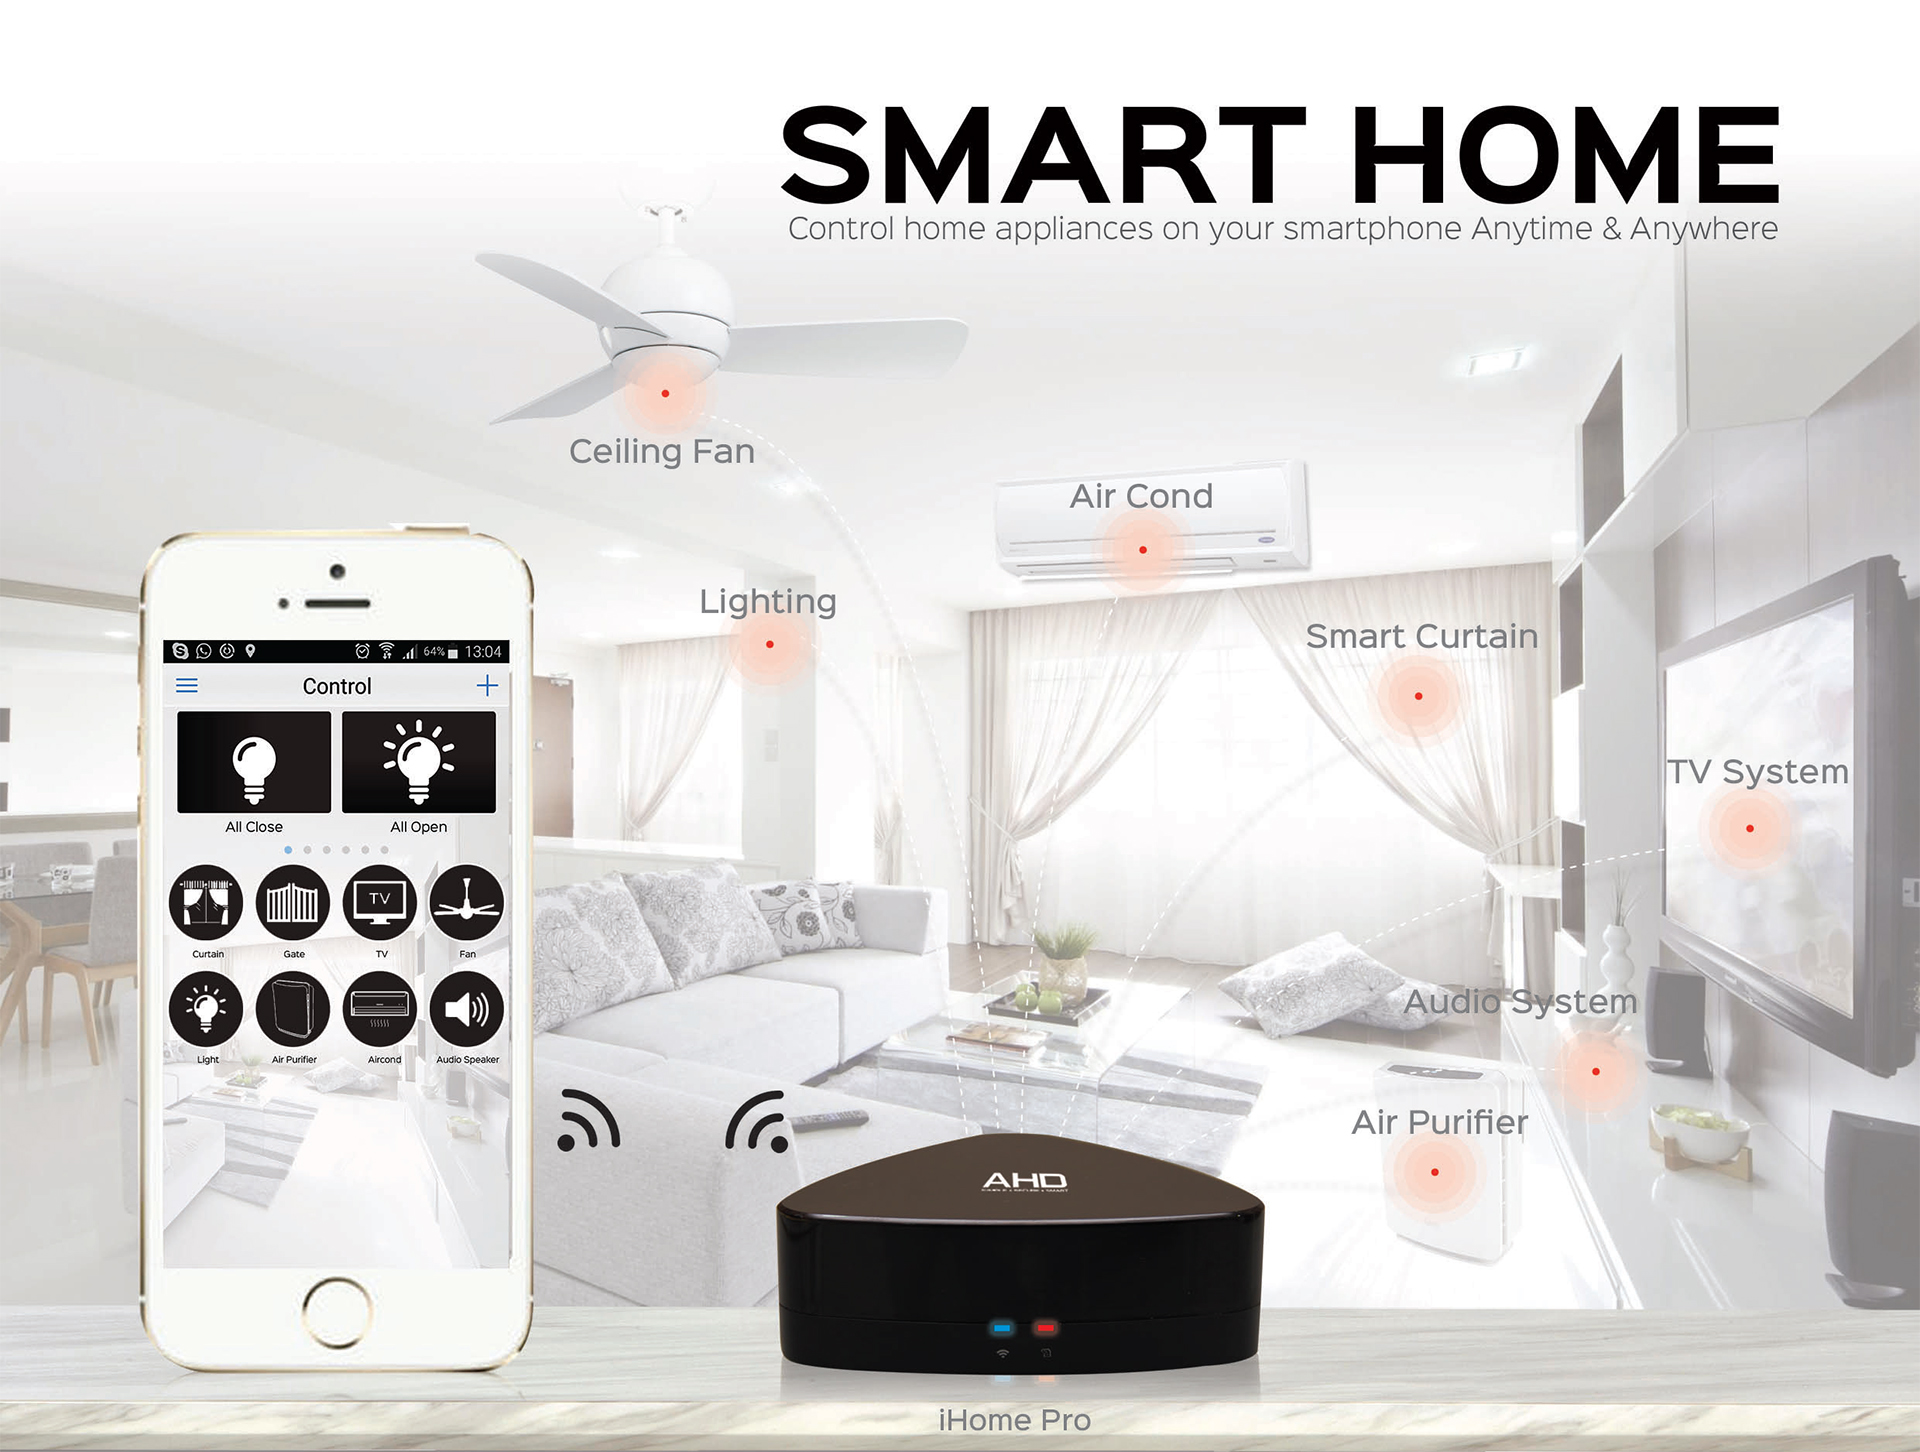 smart home diy page ahd smart home and smart cctv alarm penang malaysia. Black Bedroom Furniture Sets. Home Design Ideas